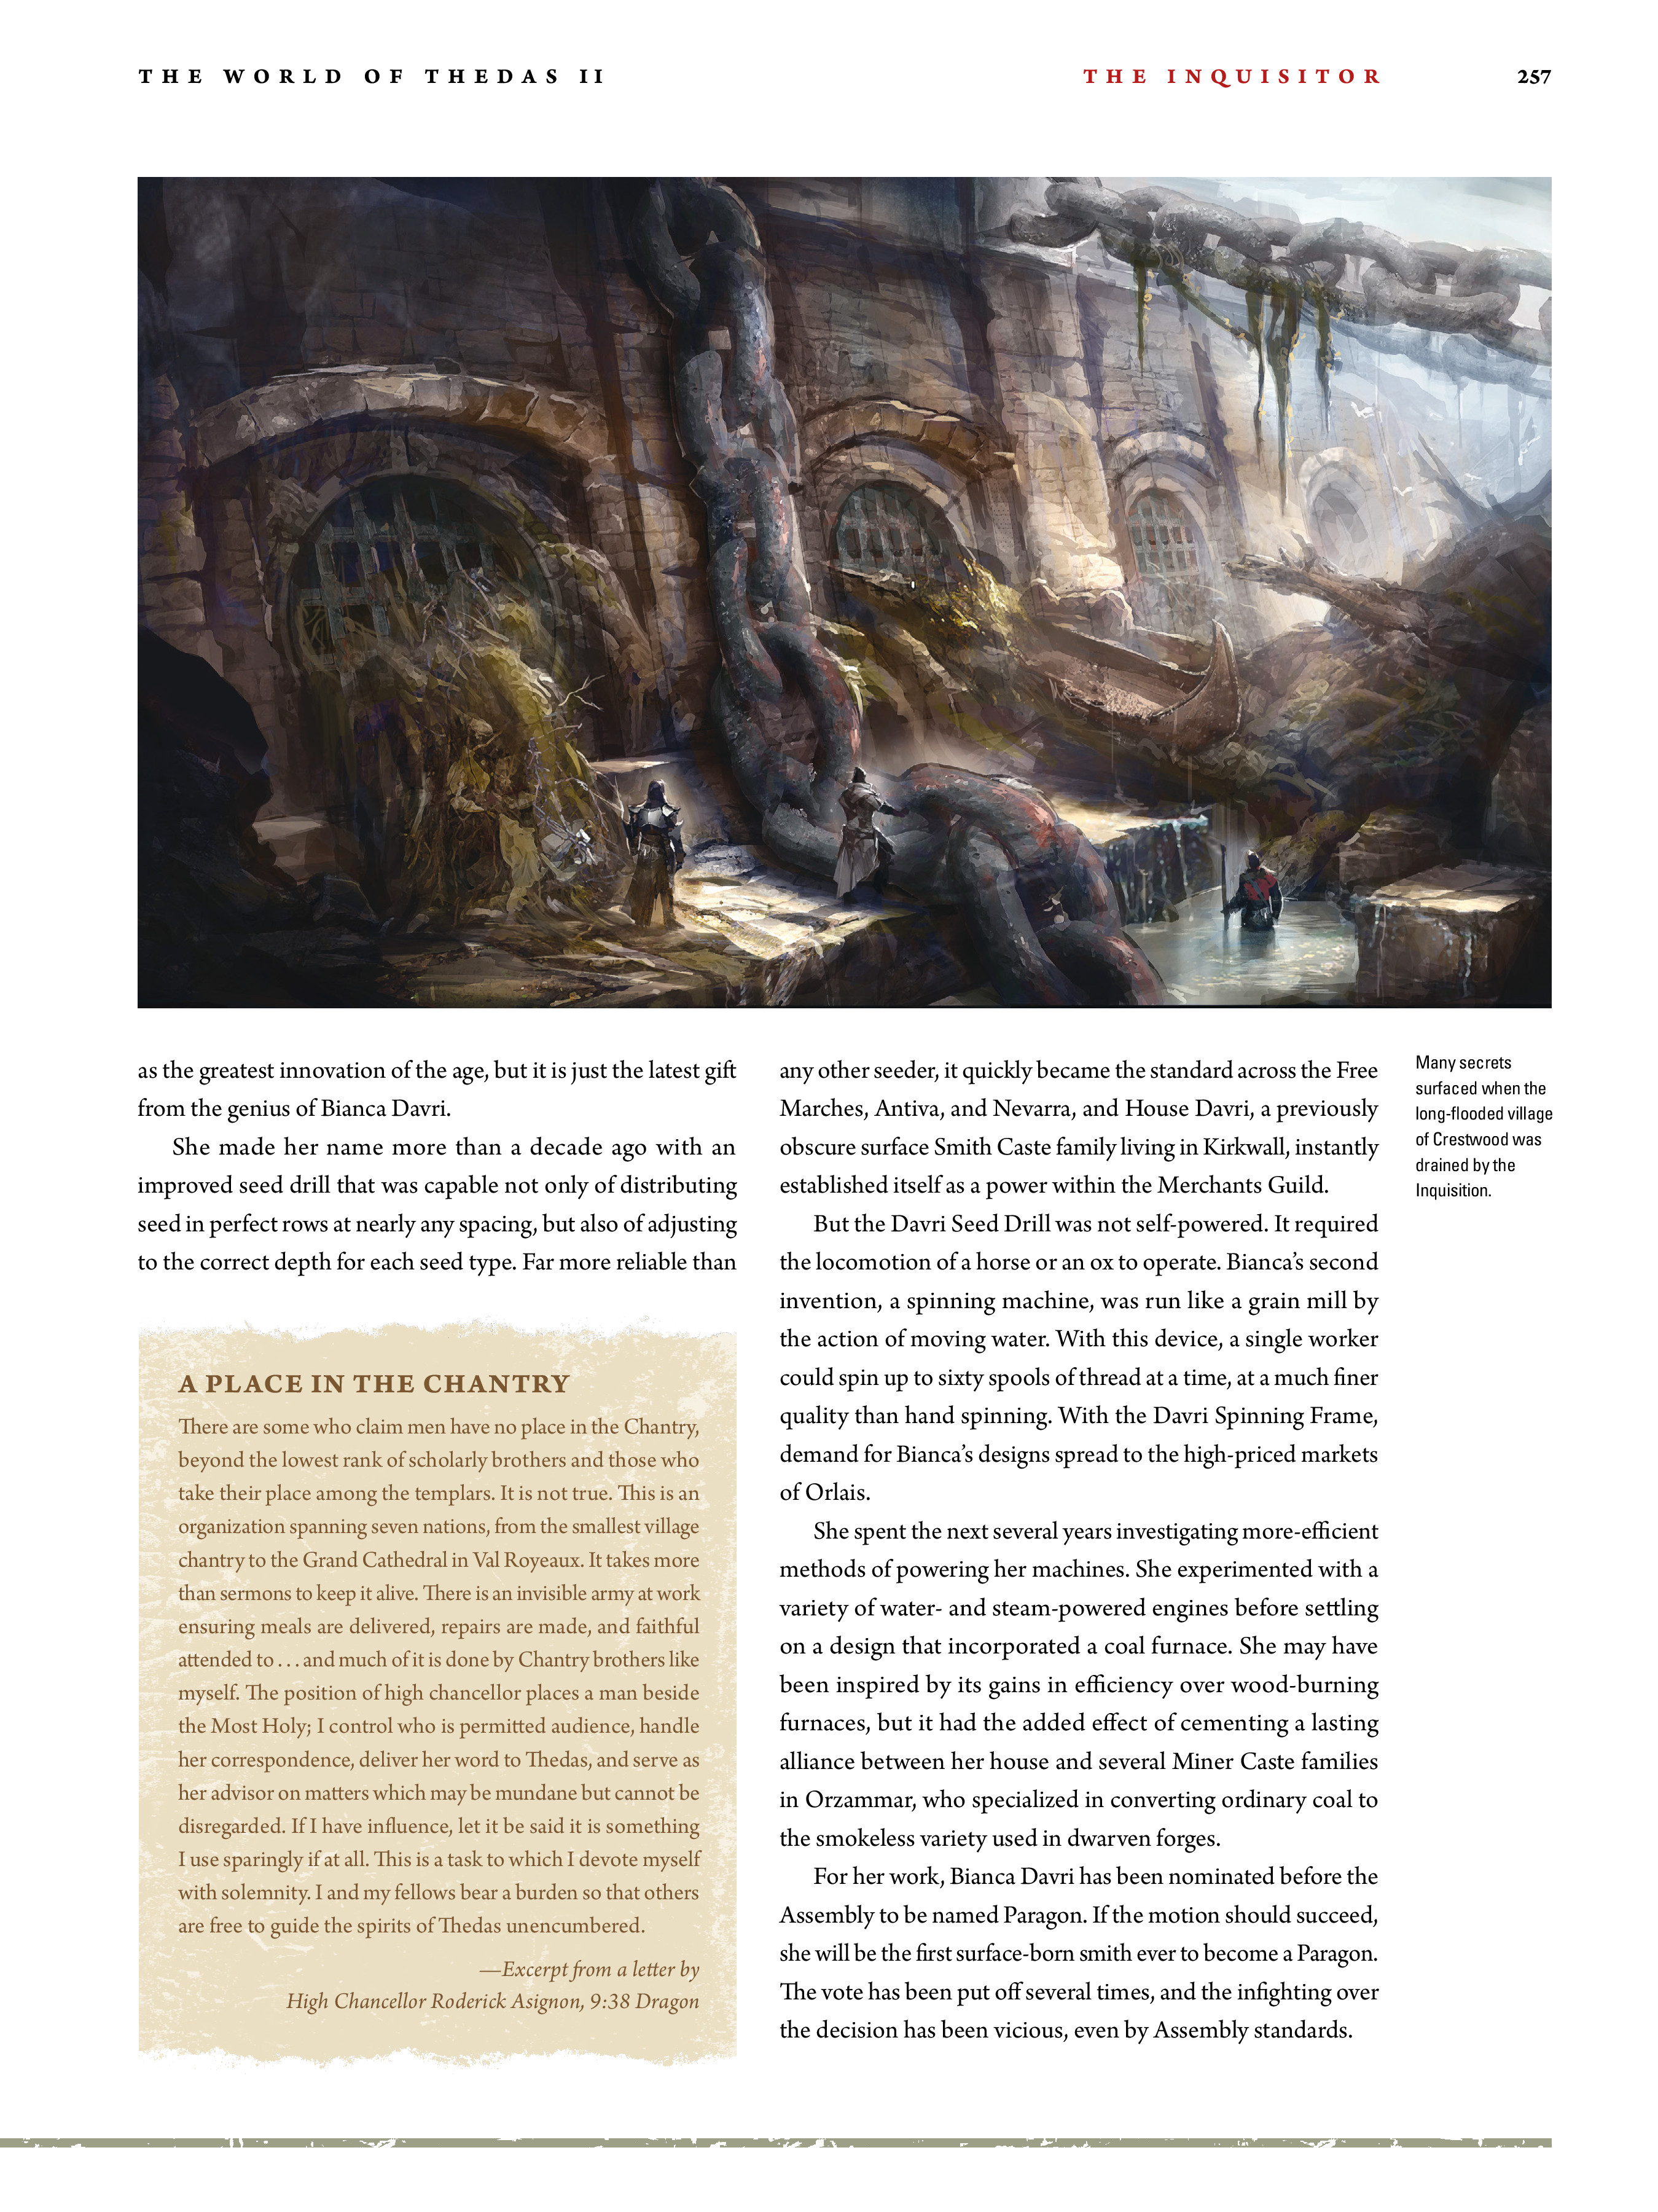 Read online Dragon Age: The World of Thedas comic -  Issue # TPB 2 - 250